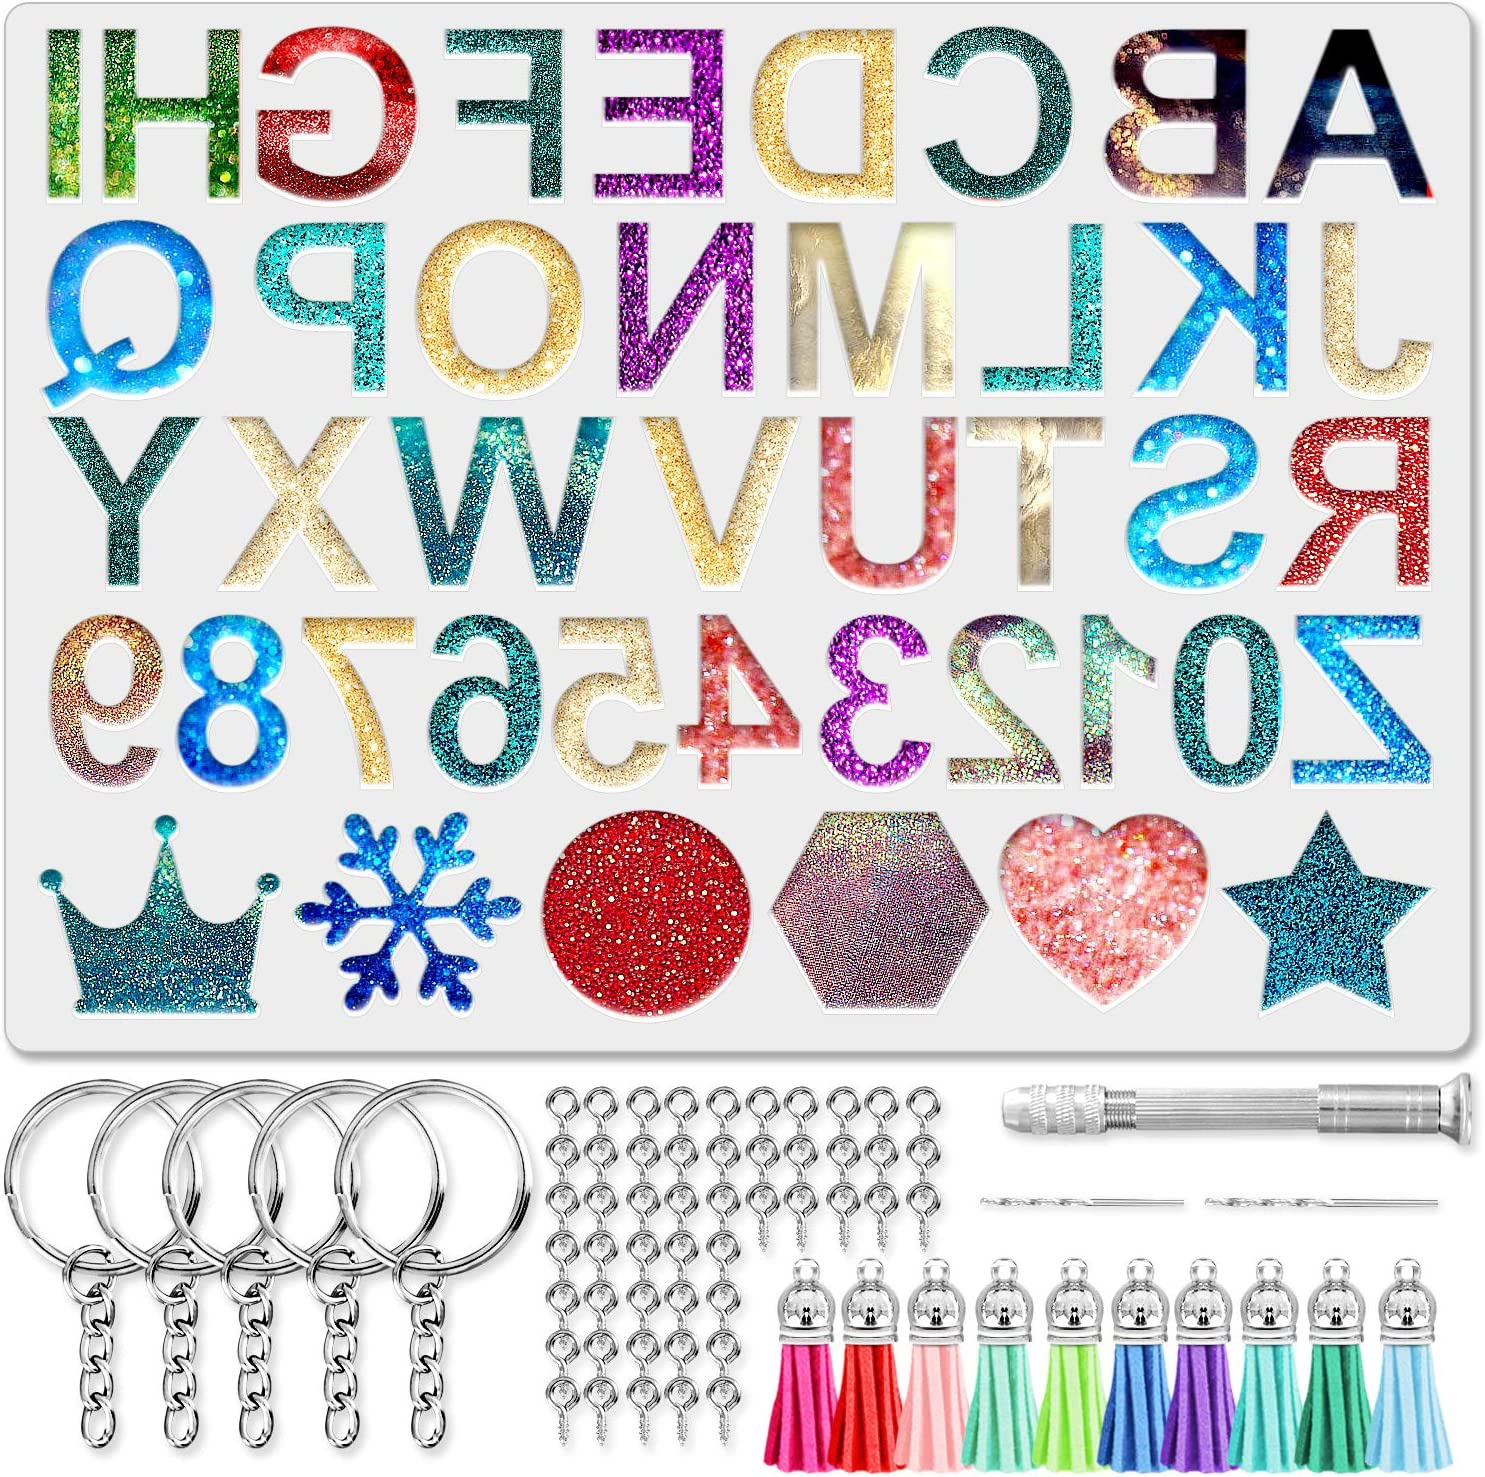 VEHHE Letter Resin Molds Backward - Silicone Alphabet Mold Don't miss the campaign shop